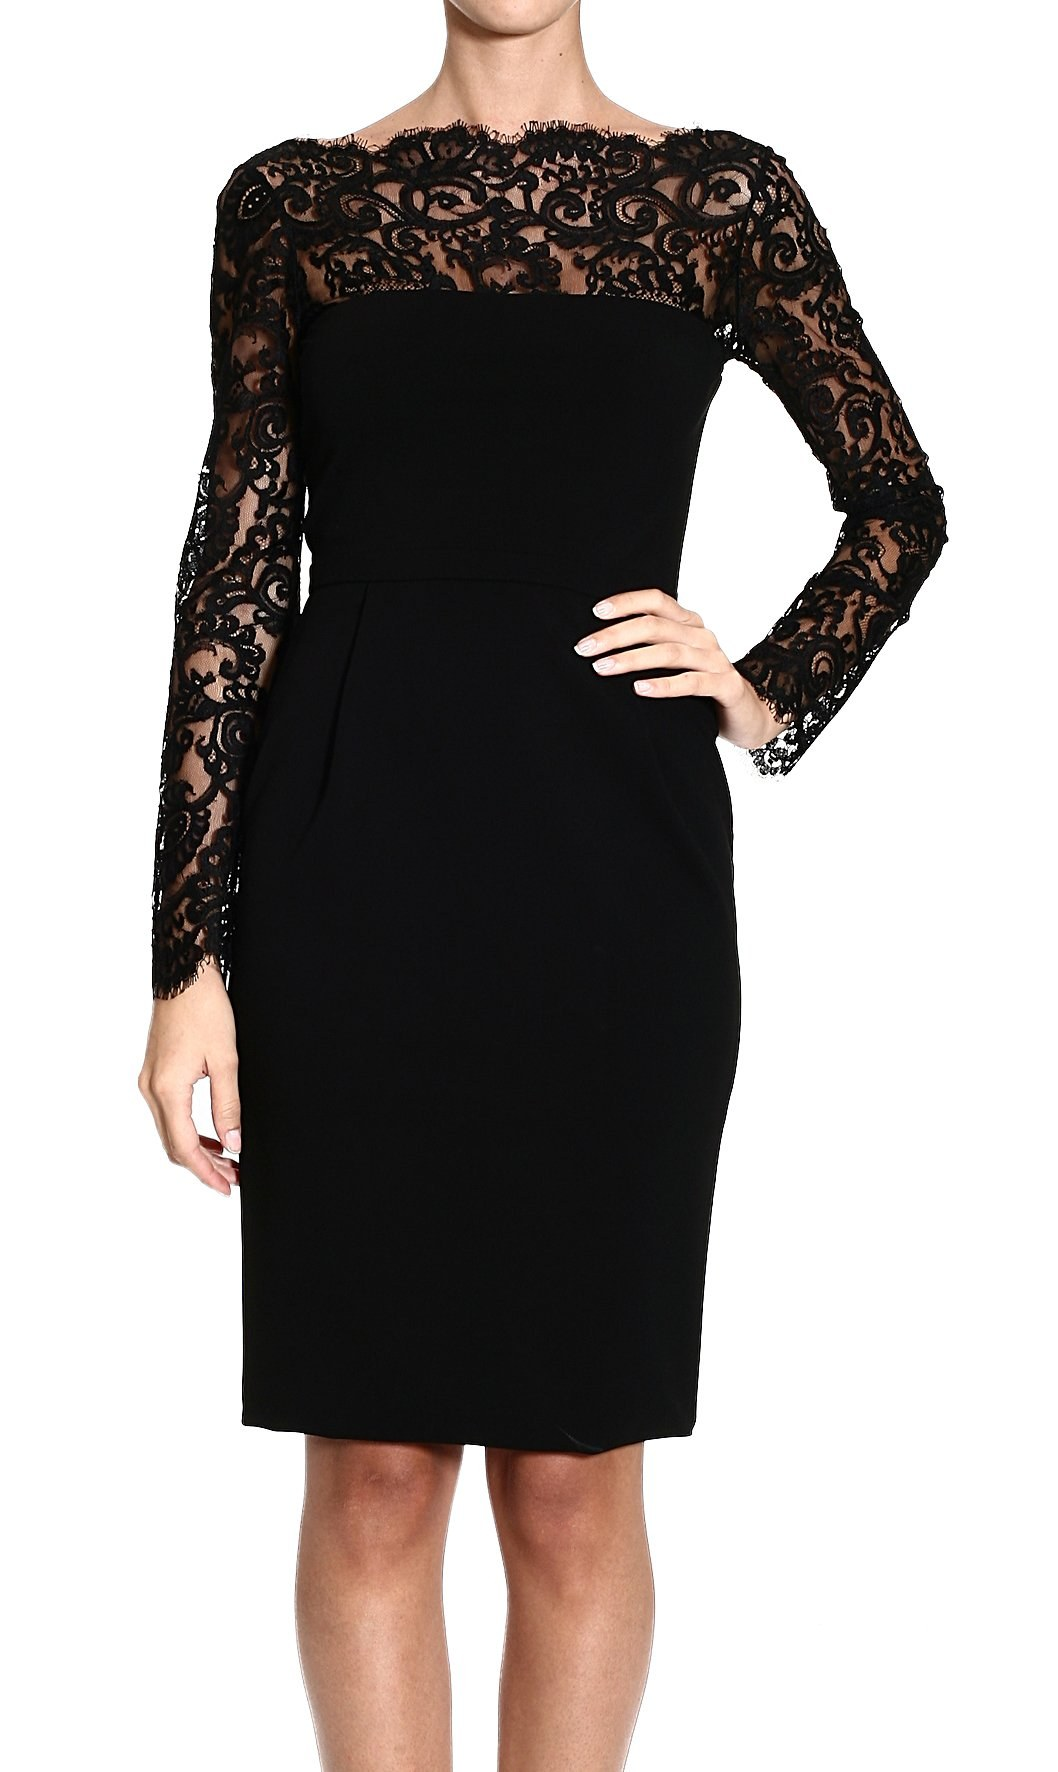 Fabulous dress in black jersey with a V neckline and long sleeves with a contrasting pattern cuff very boho with a gather around the hemline again in a contrasting material unlined stretchy and .